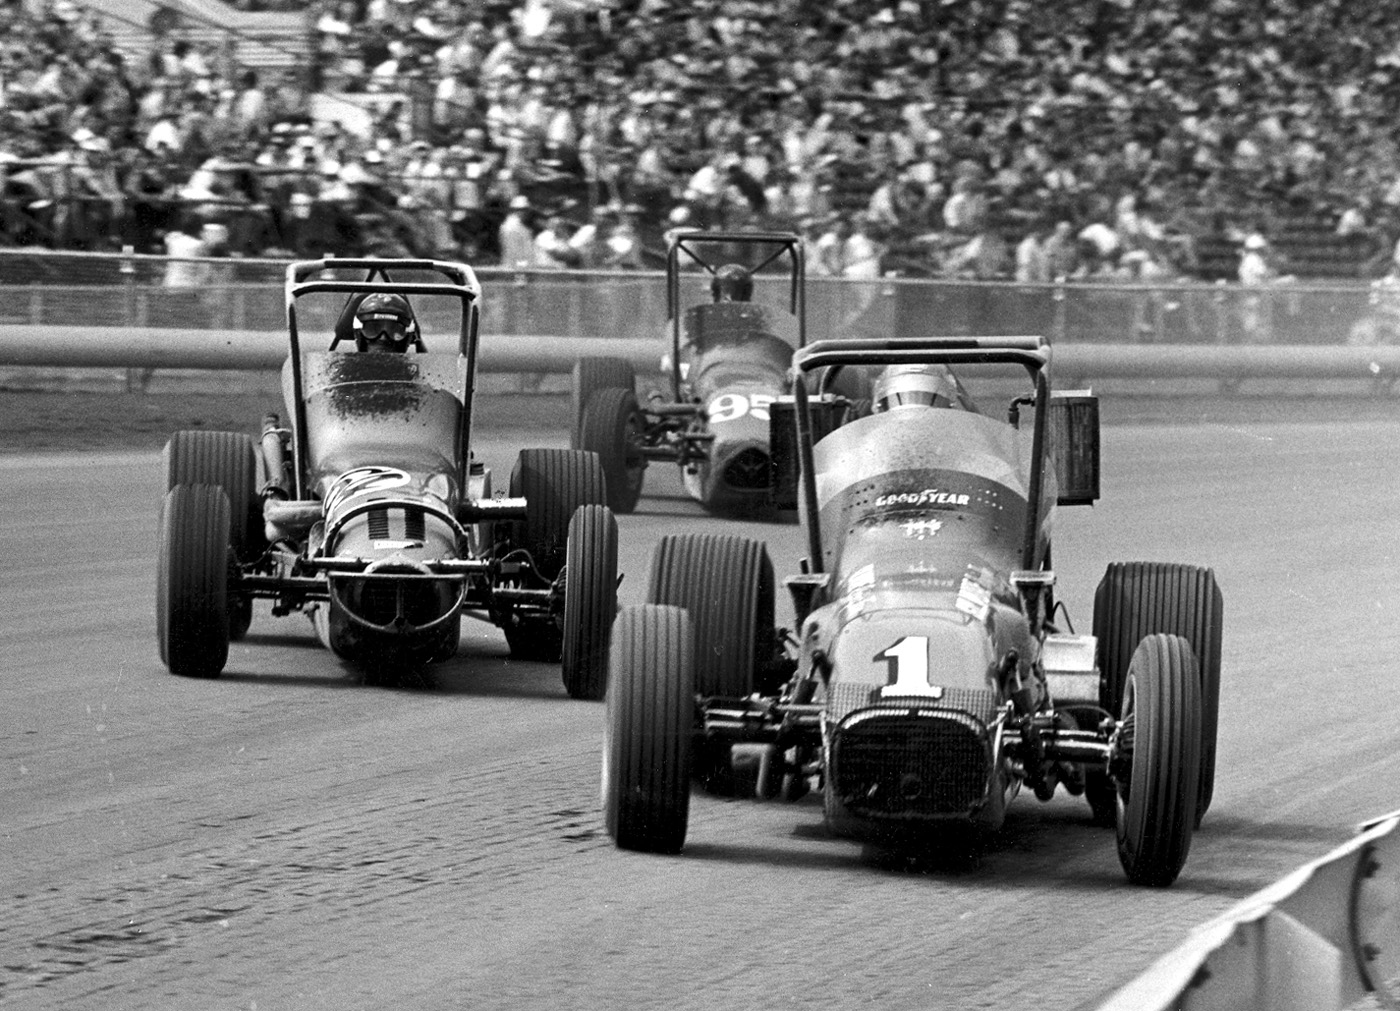 A.J. Foyt (1) shows the way during a championship car field at the DuQuoin (Ill.) State Fairgrounds in 1973.